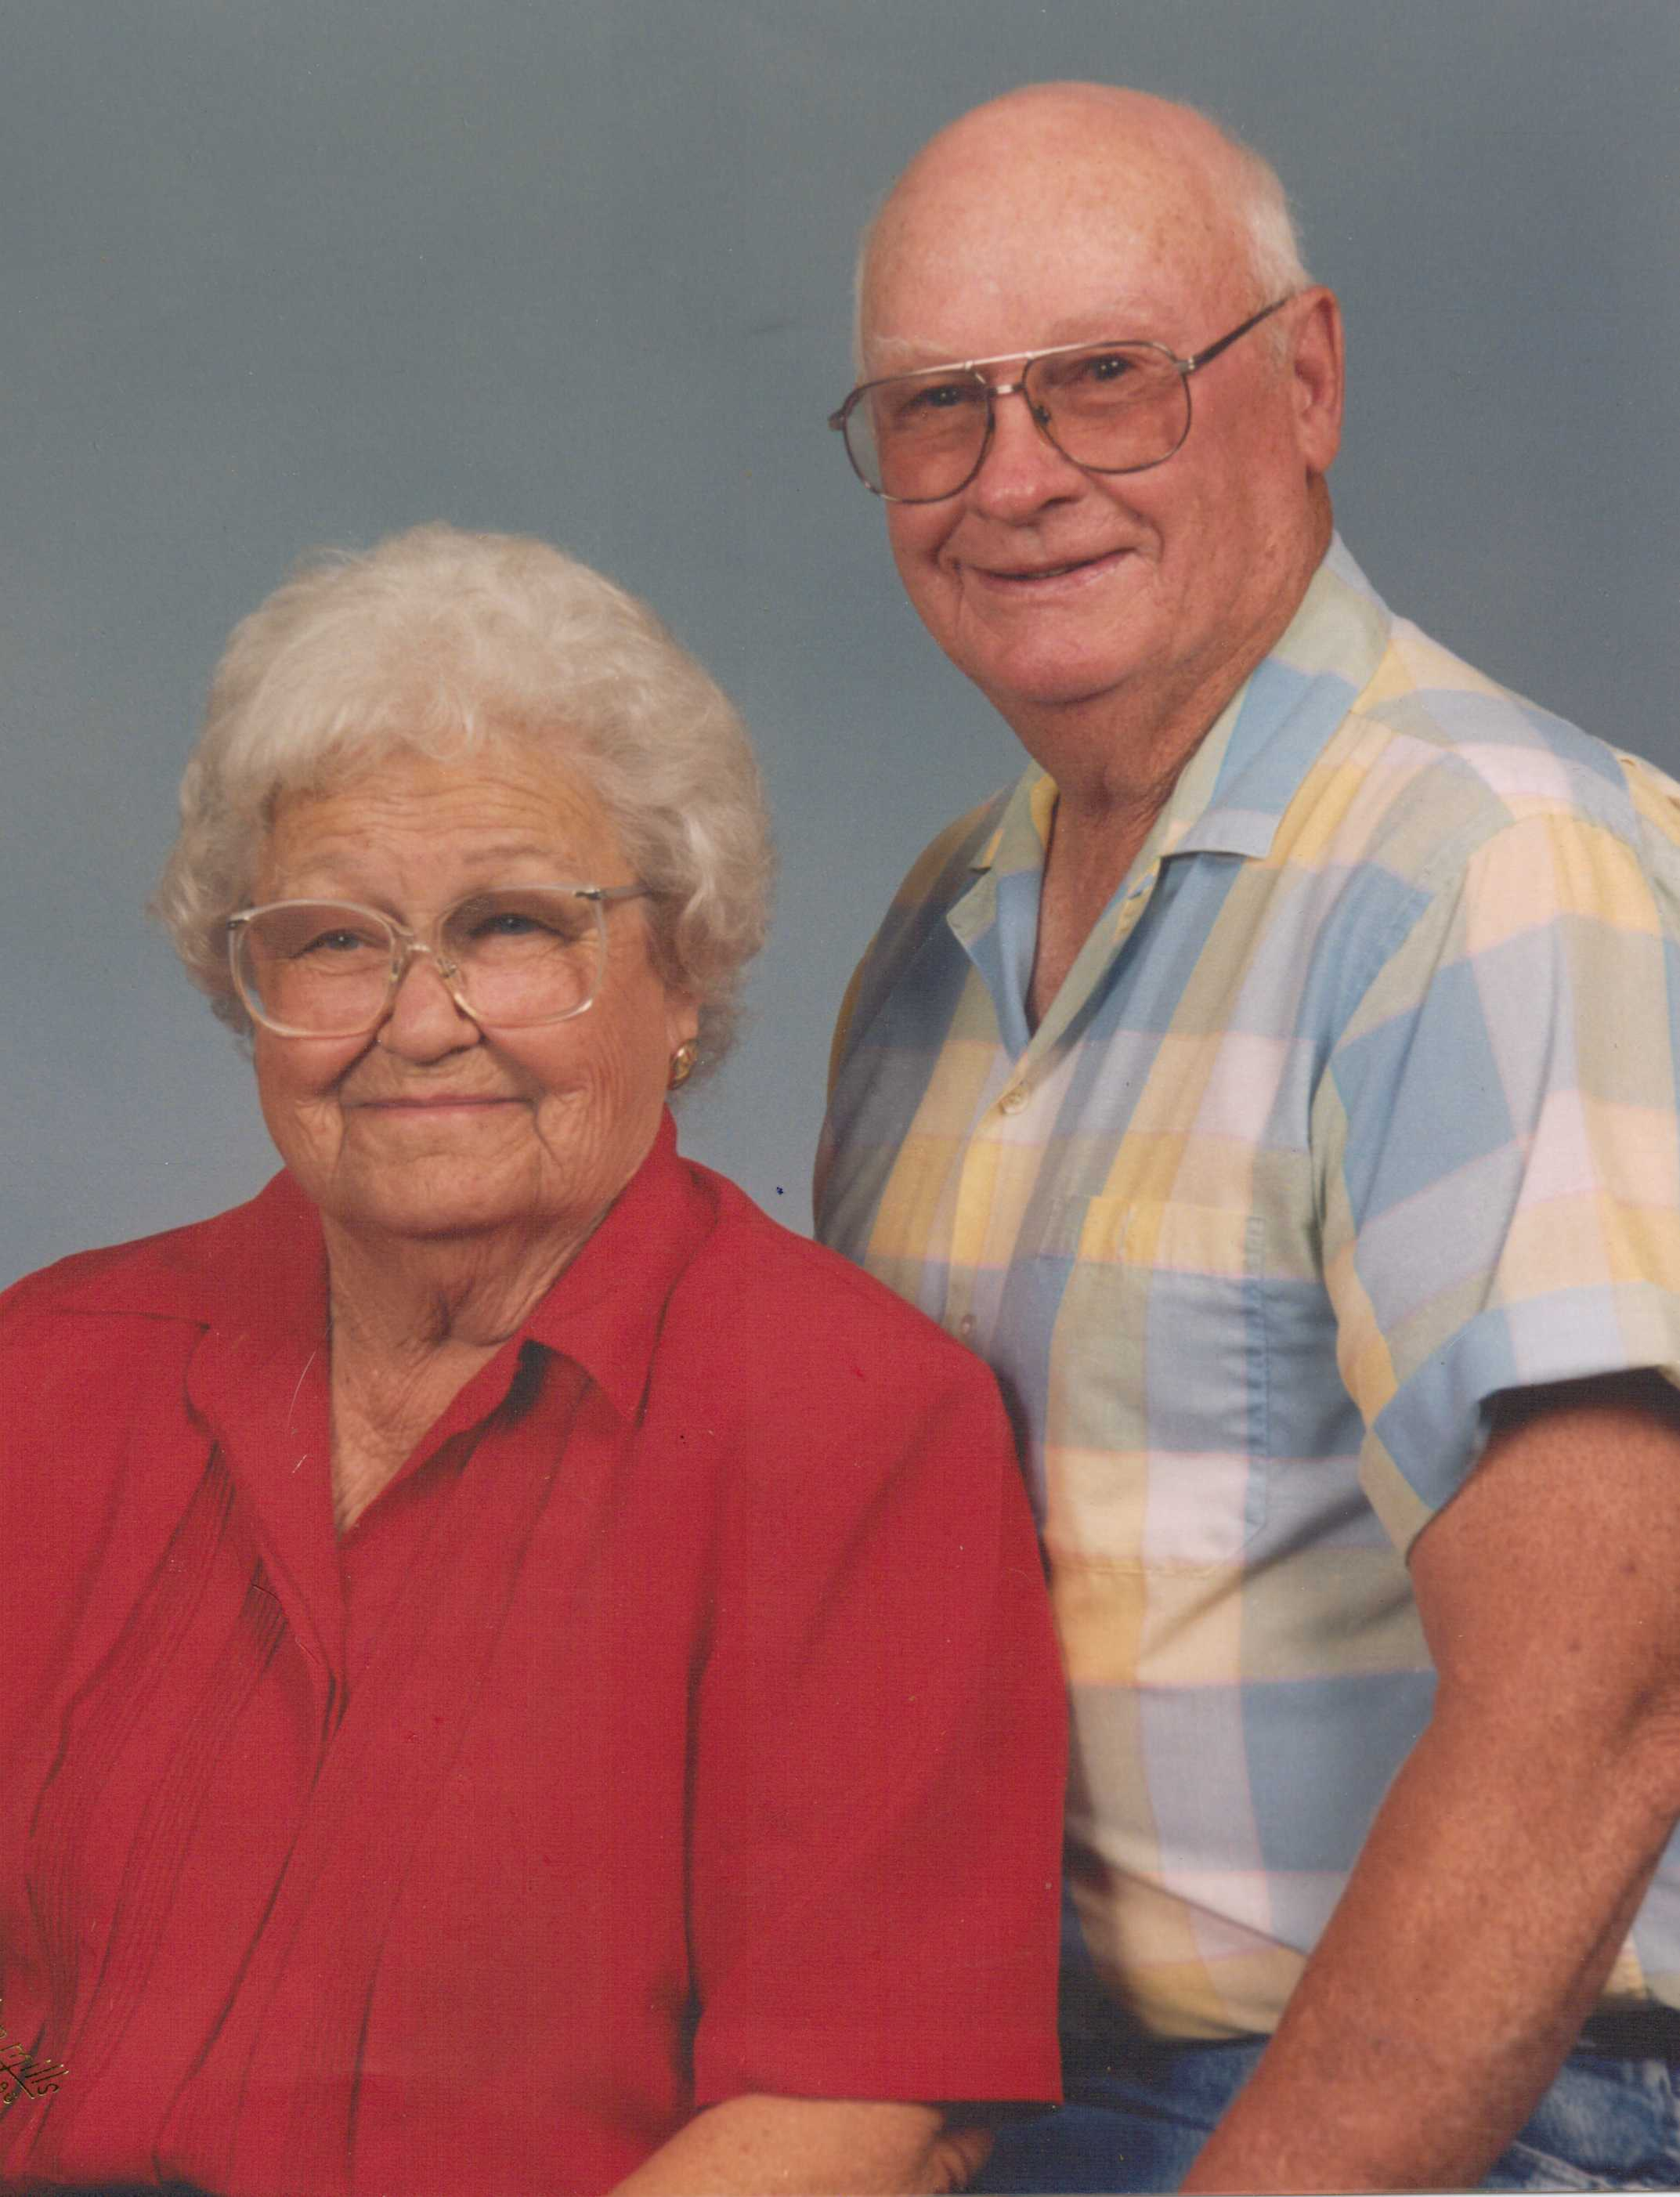 My dad's parents - Nanny and Papa